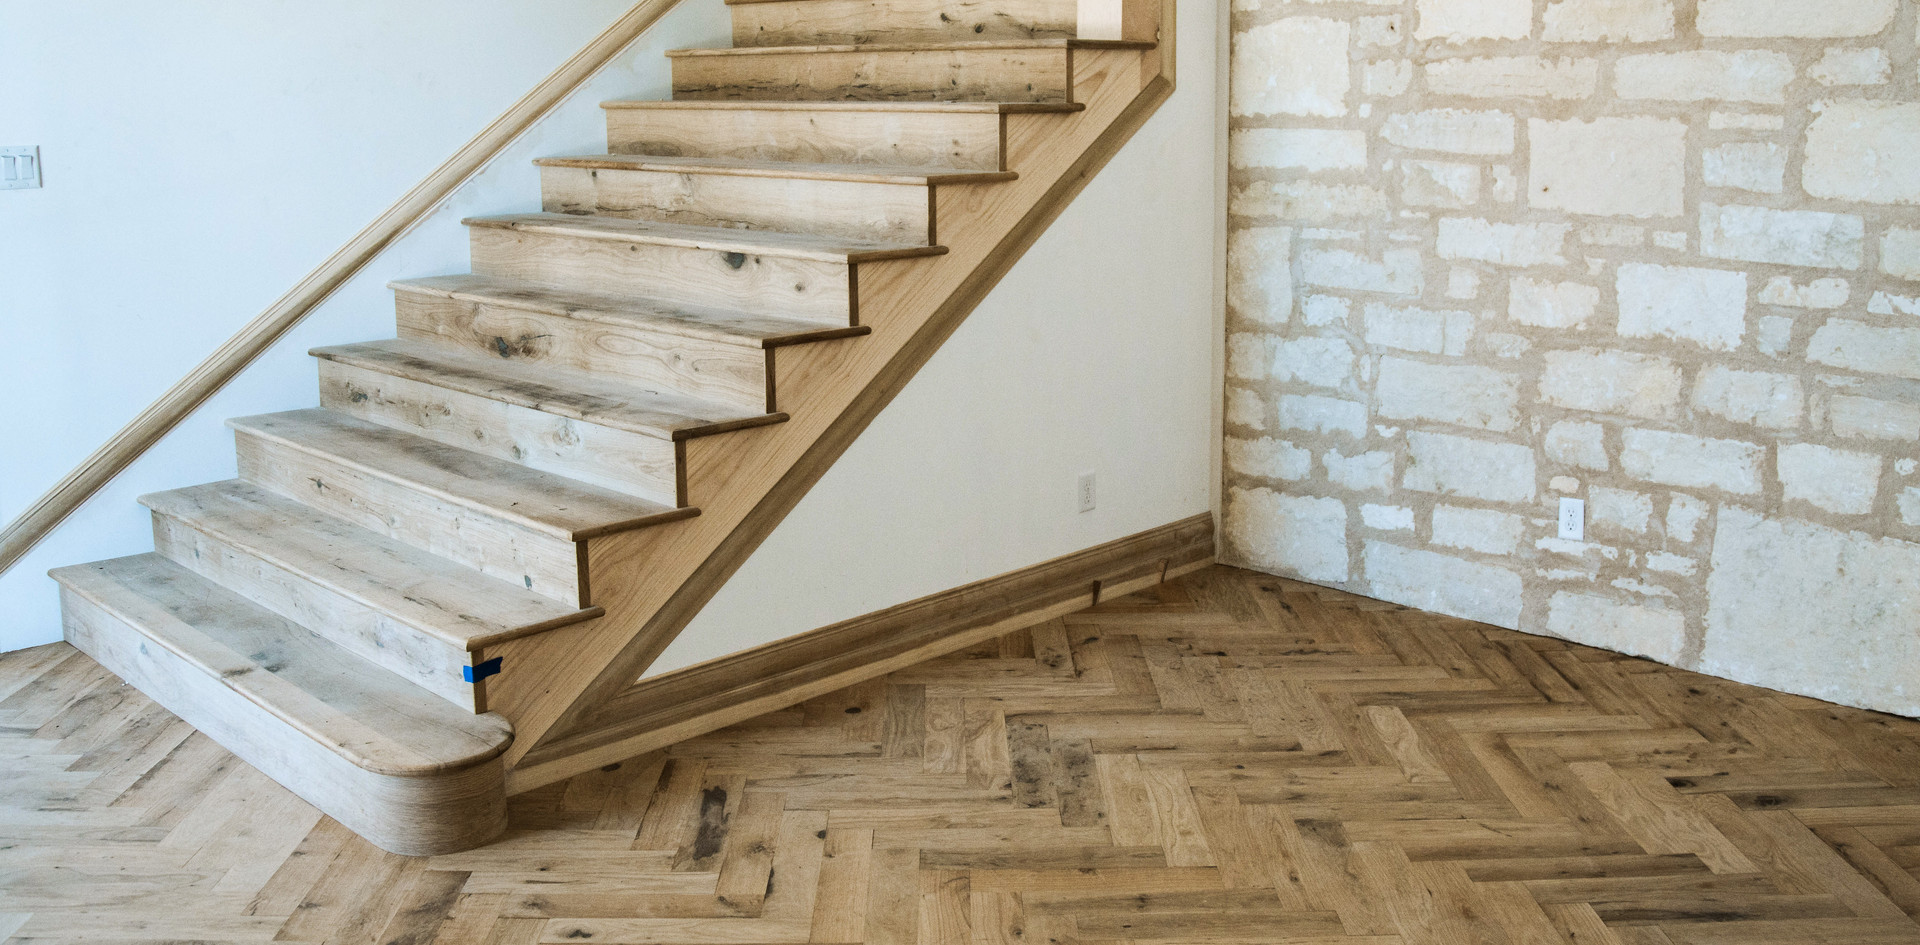 Texas Post Oak Hardwood Flooring Herringbone Pattern